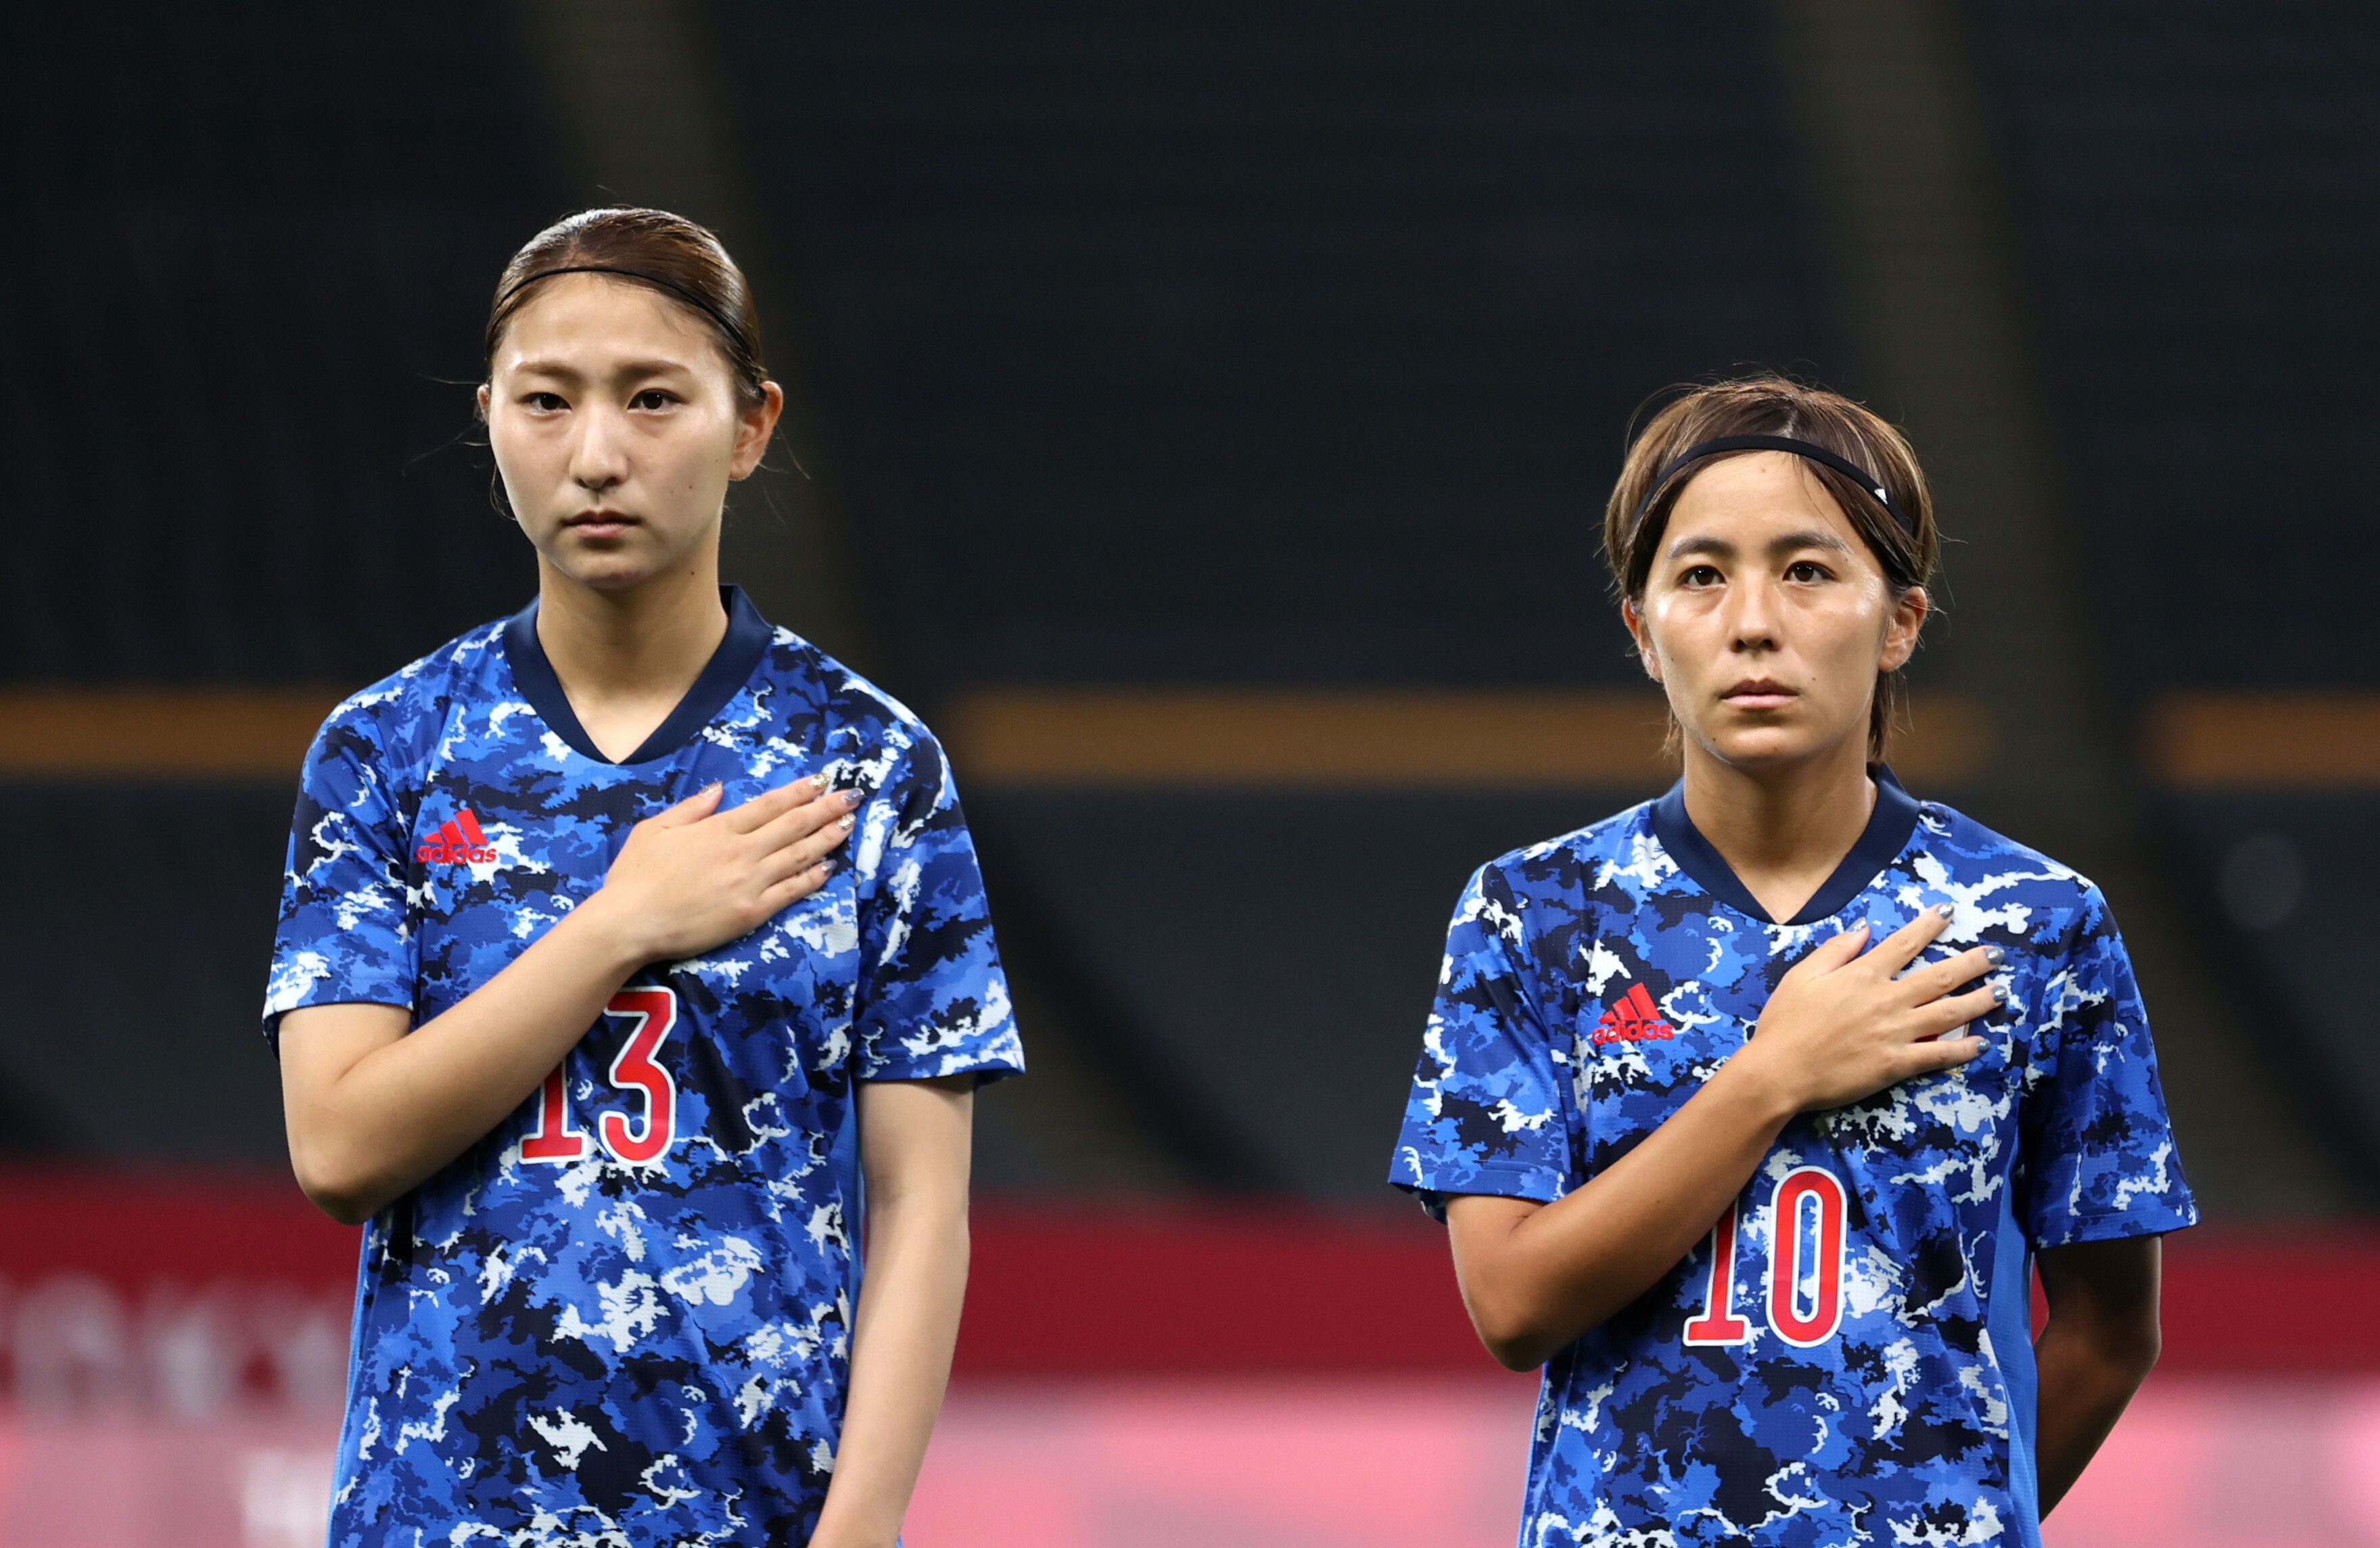 SAPPORO, JAPAN - JULY 21: (L - R) Yuzuho Shiokoshi #13 and Mana Iwabuchi #10 of Team Japan stand for the national anthem prio